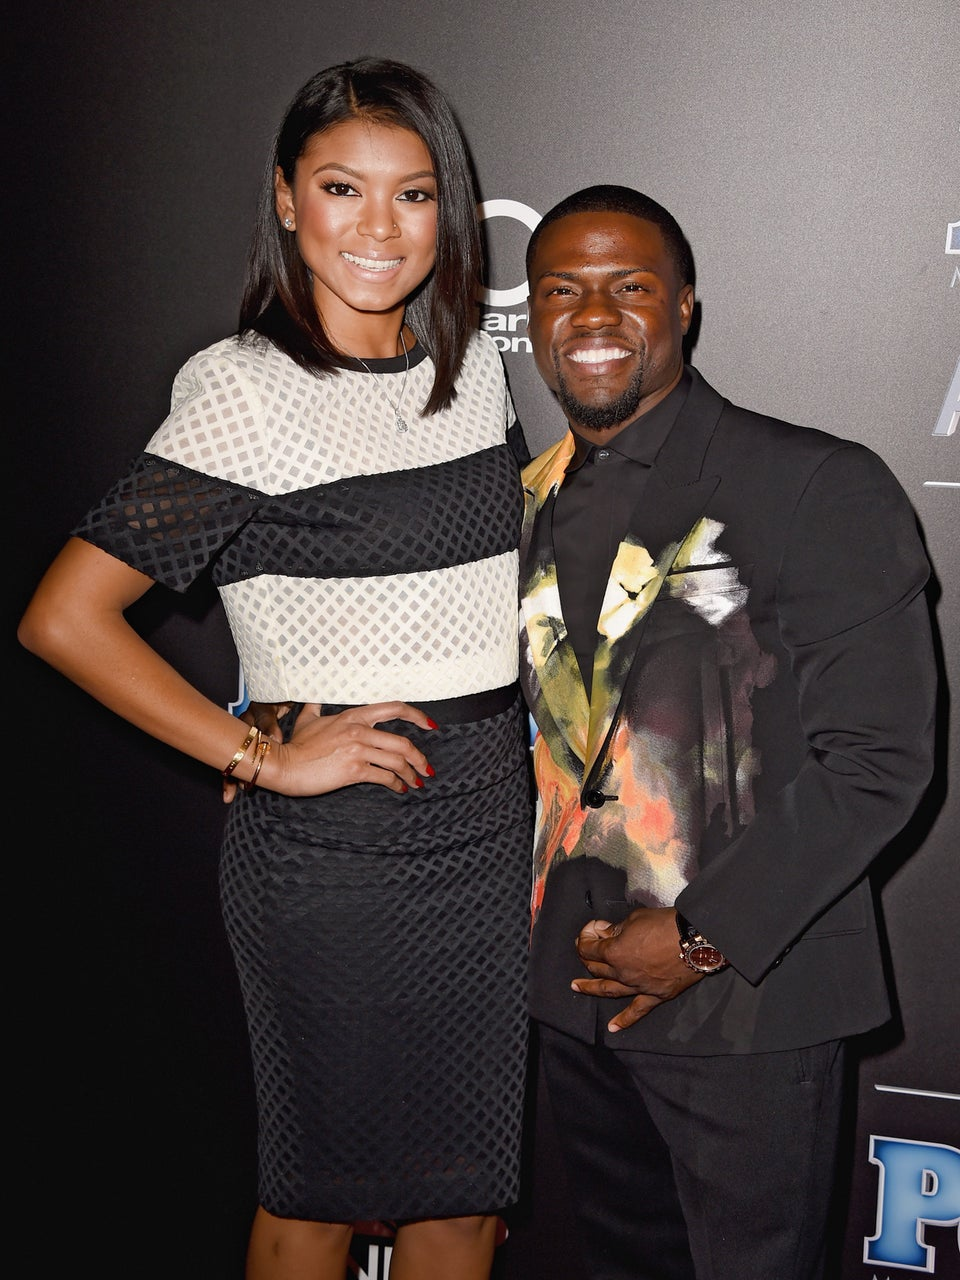 Kevin Hart Shares His Pick For Best Man At His Upcoming Wedding